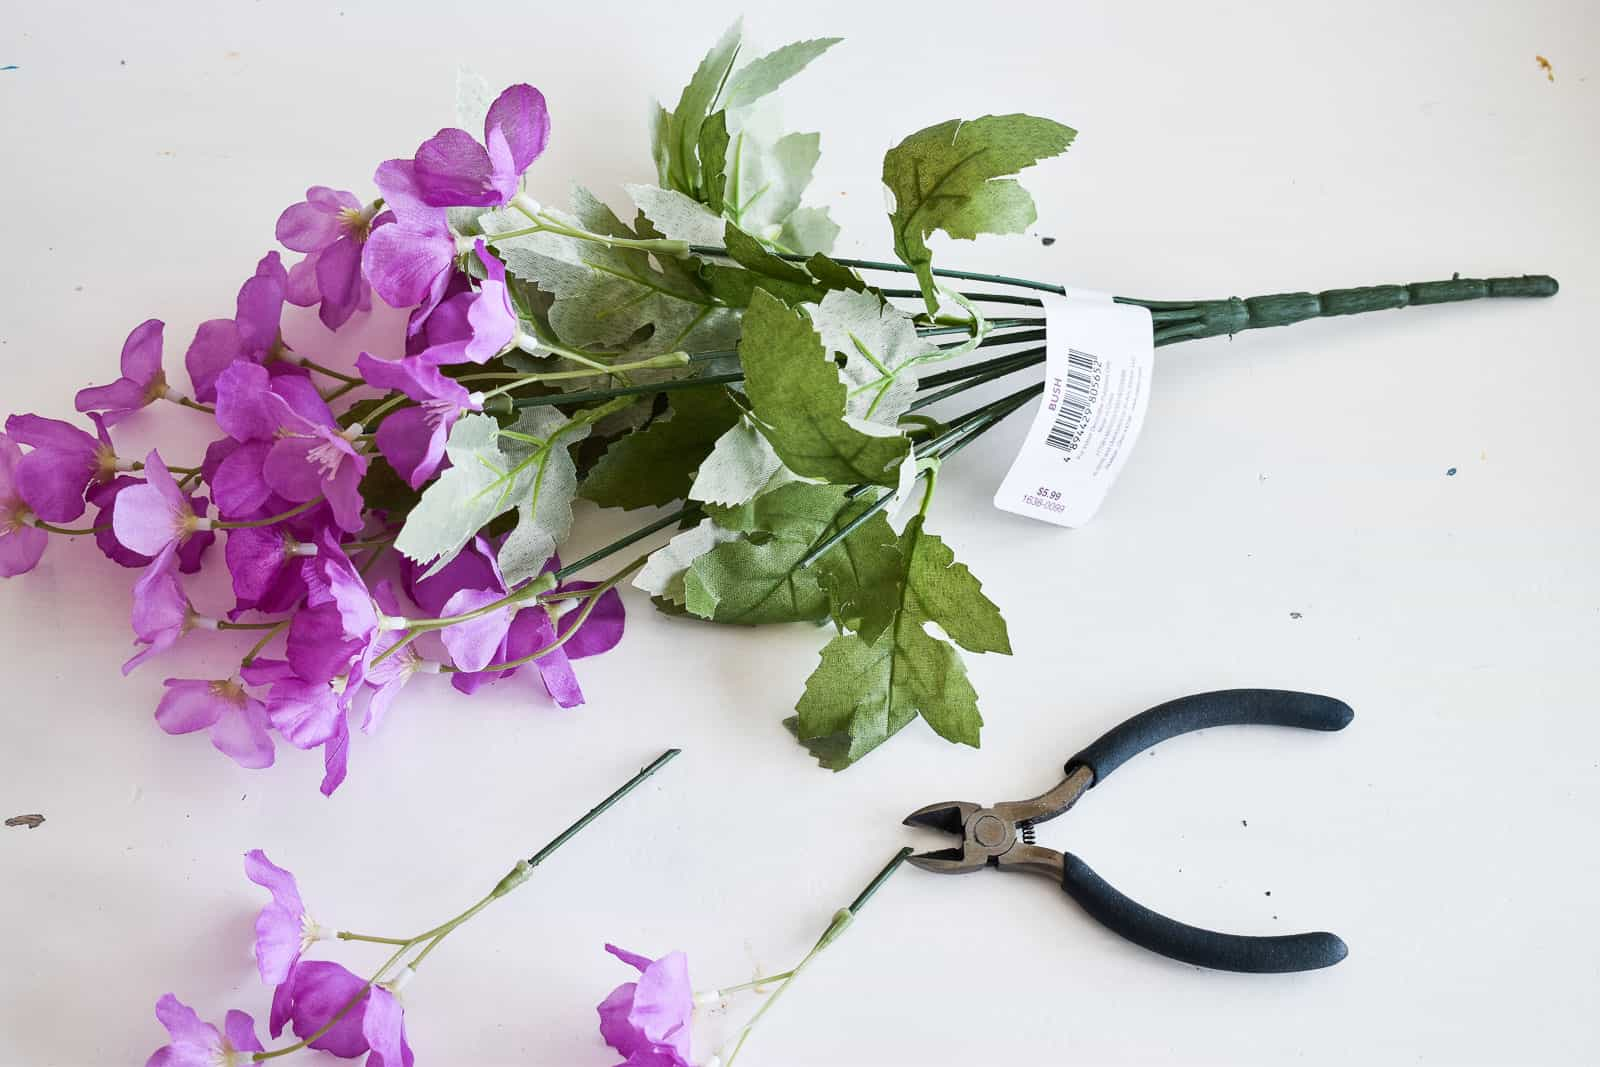 use wire cutter to cut flowers from arrangement